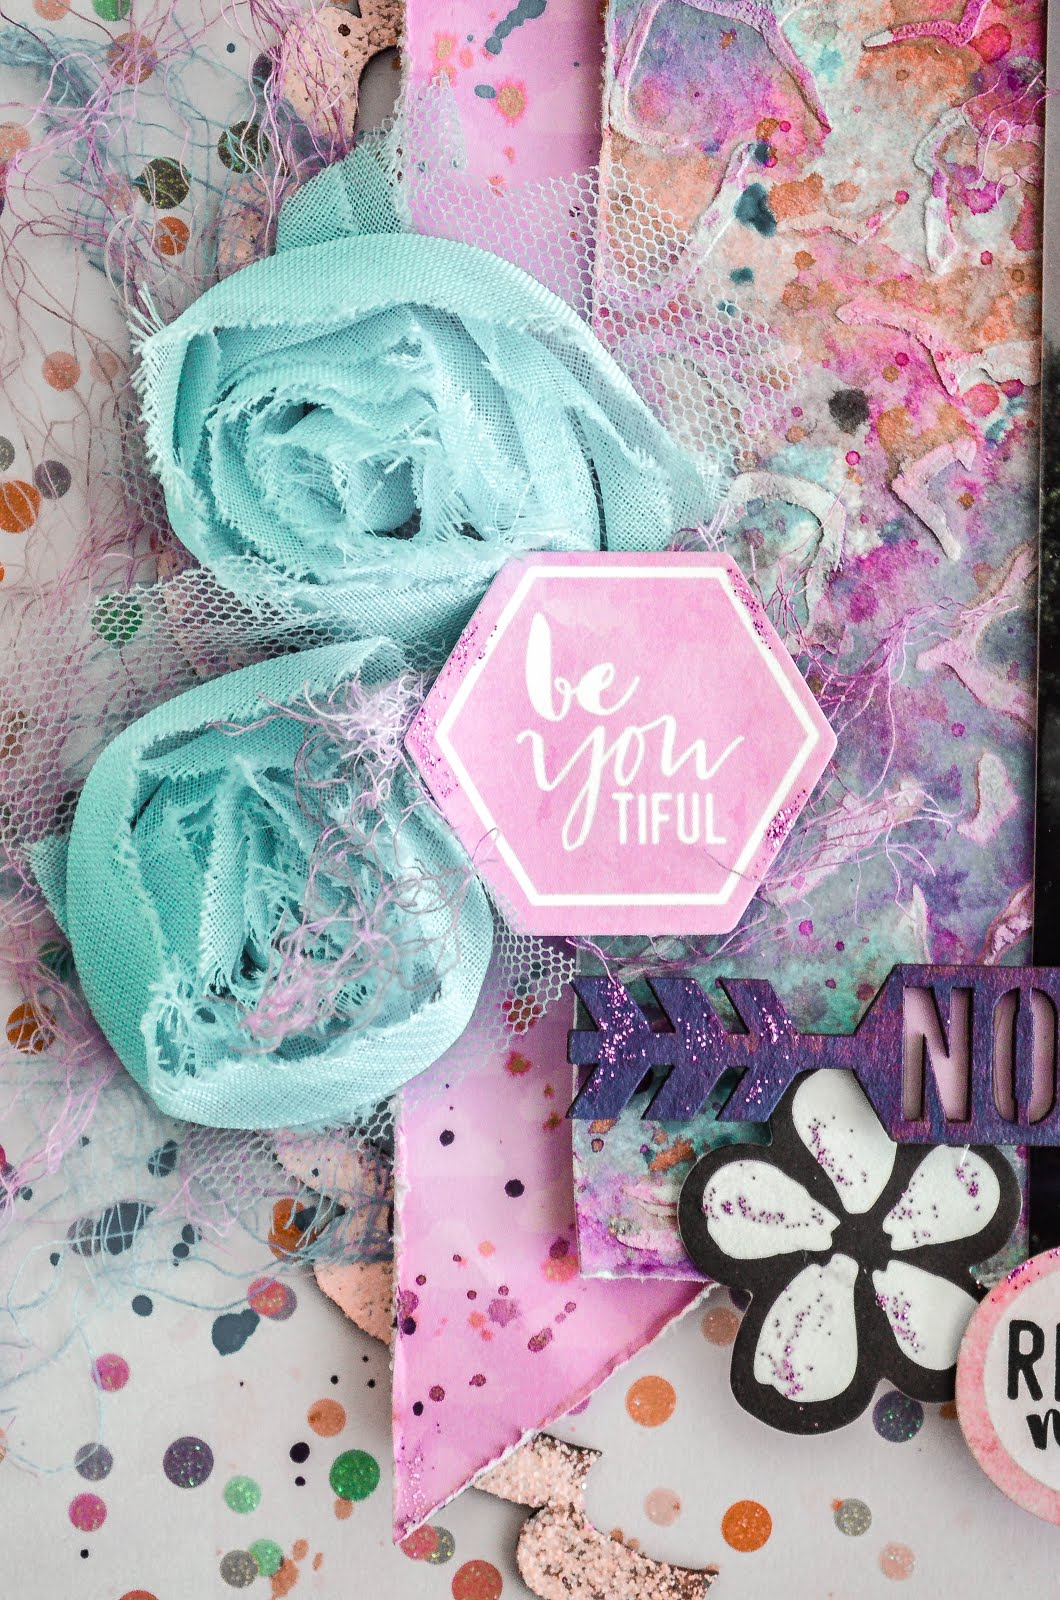 Pastel scrapbooking layout for Scrap Our Stash Design Team featuring chipboard and die cuts in pink, blue, and lavender purple